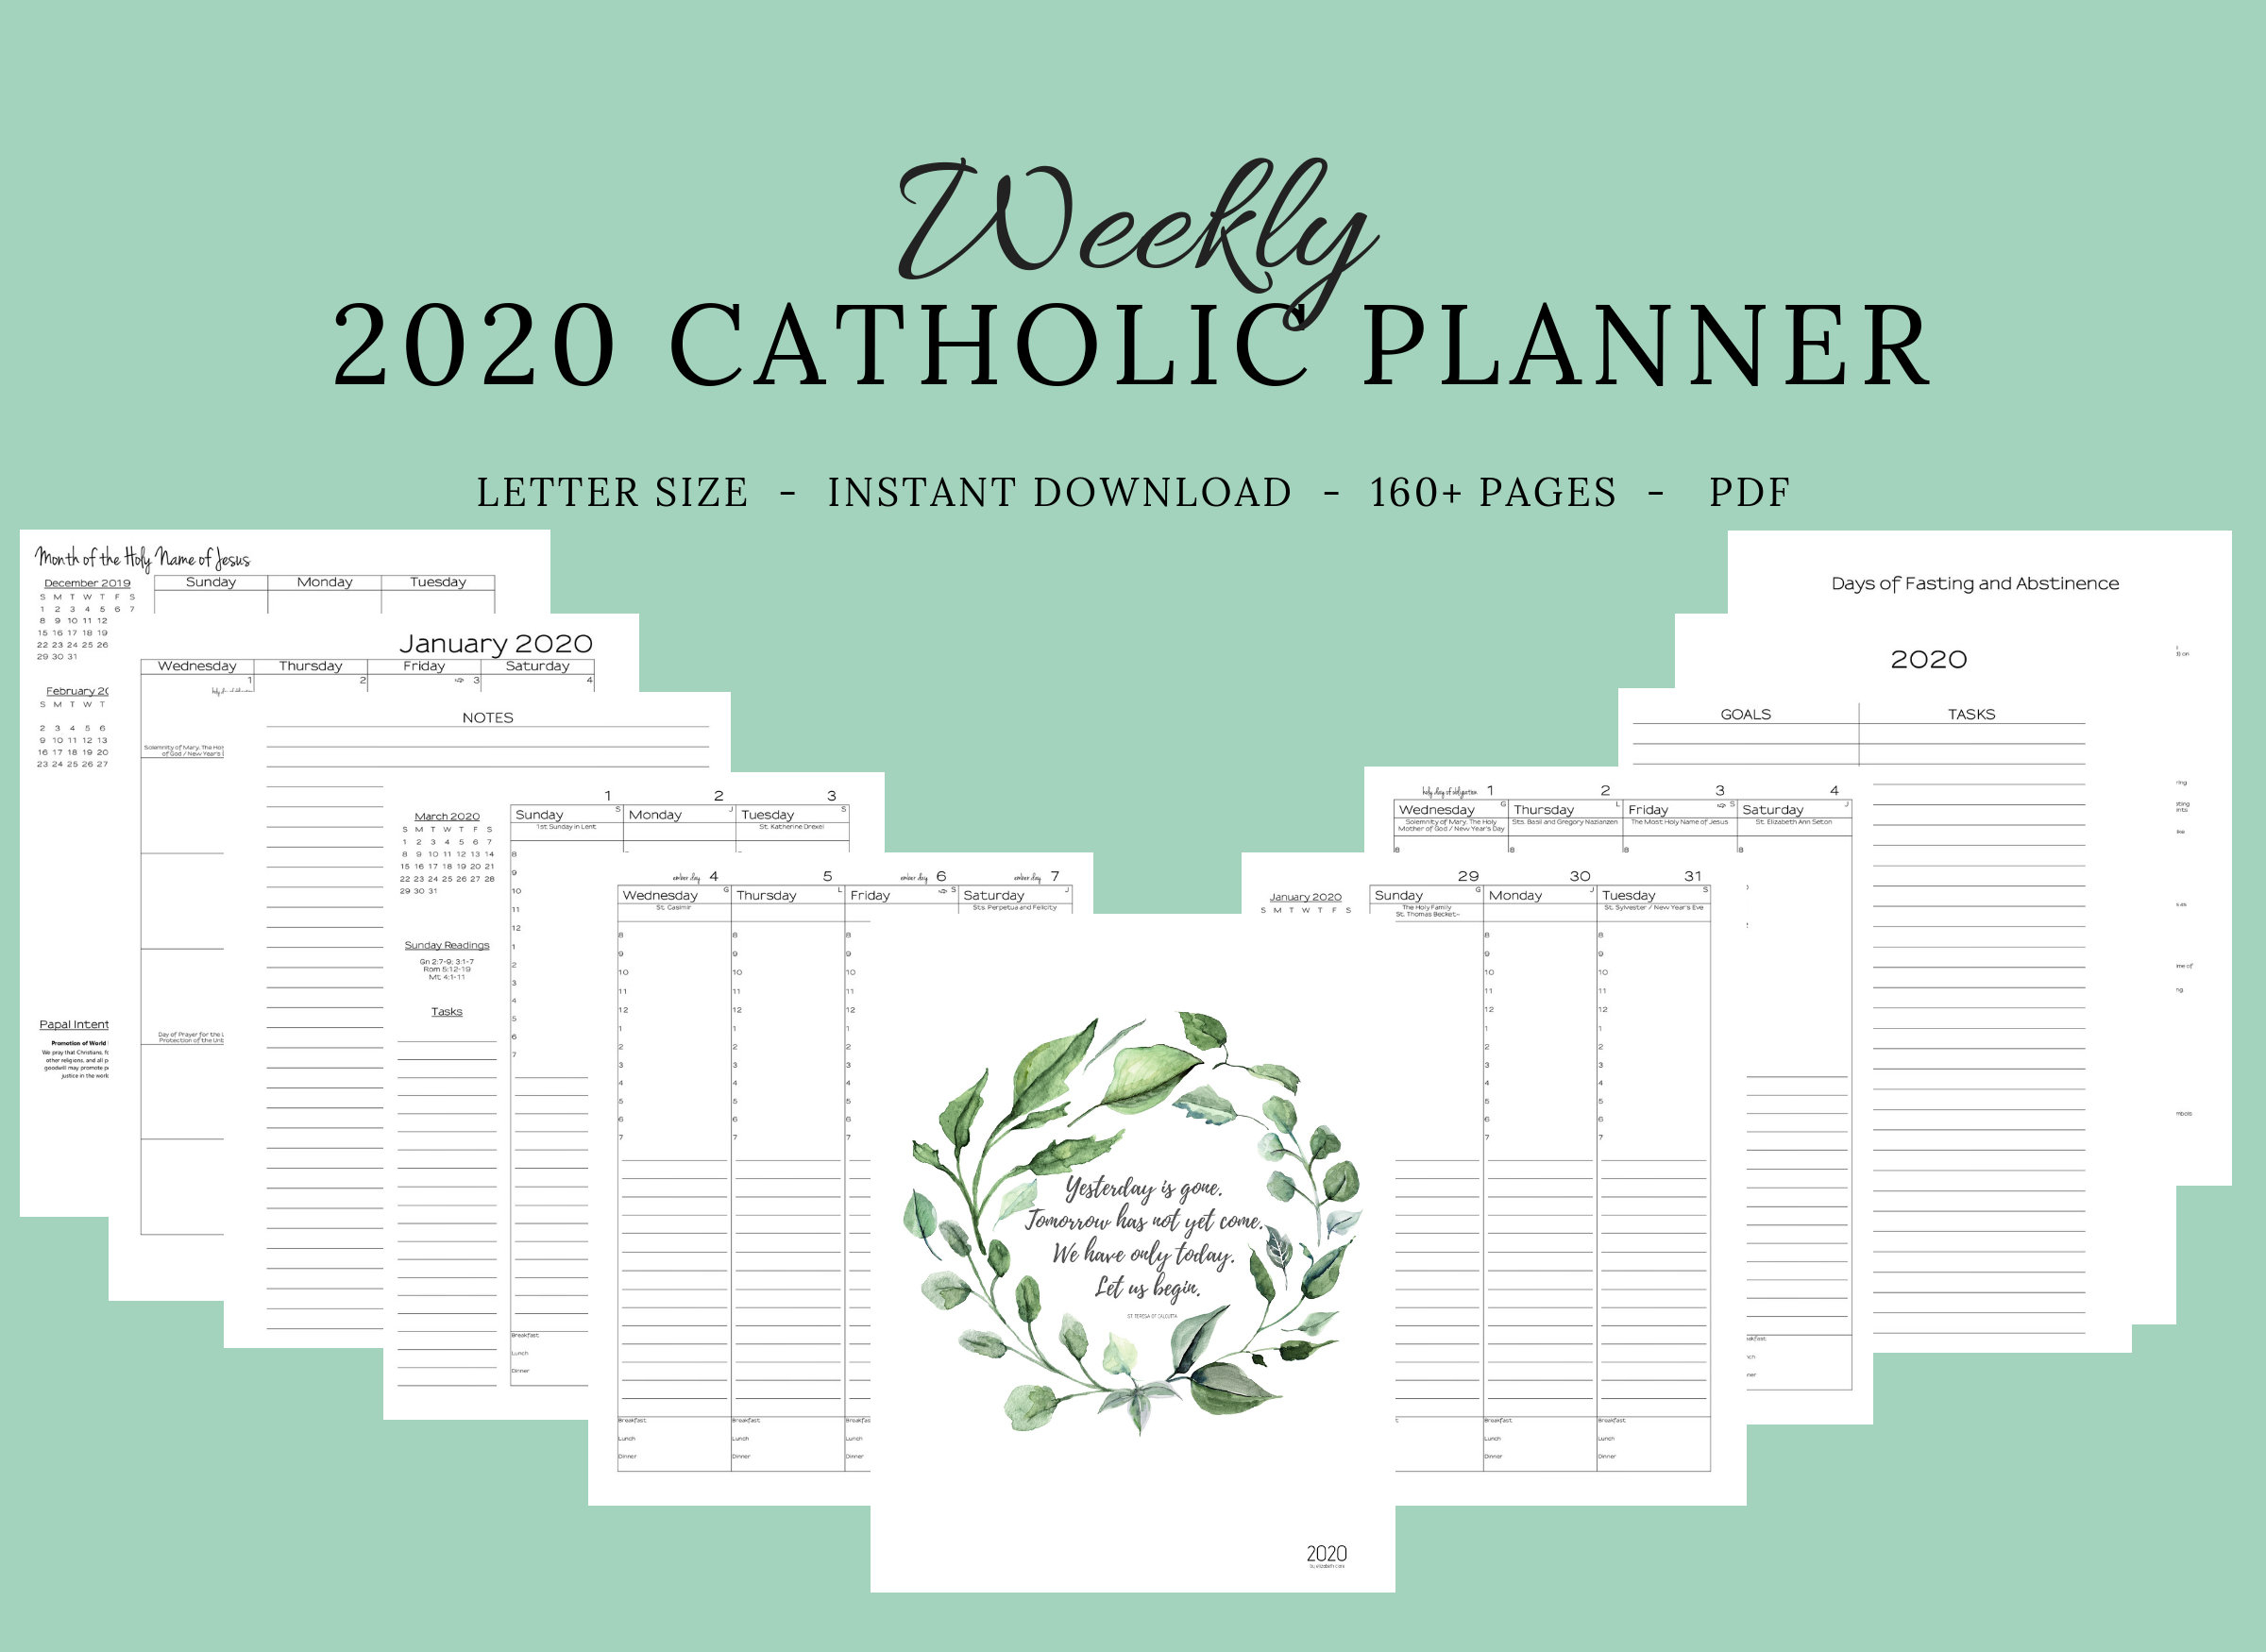 2020 Catholic Planner Weekly Printable: Daily Planner / | Etsy within Free Catholic Liturgical Calendar For 2020